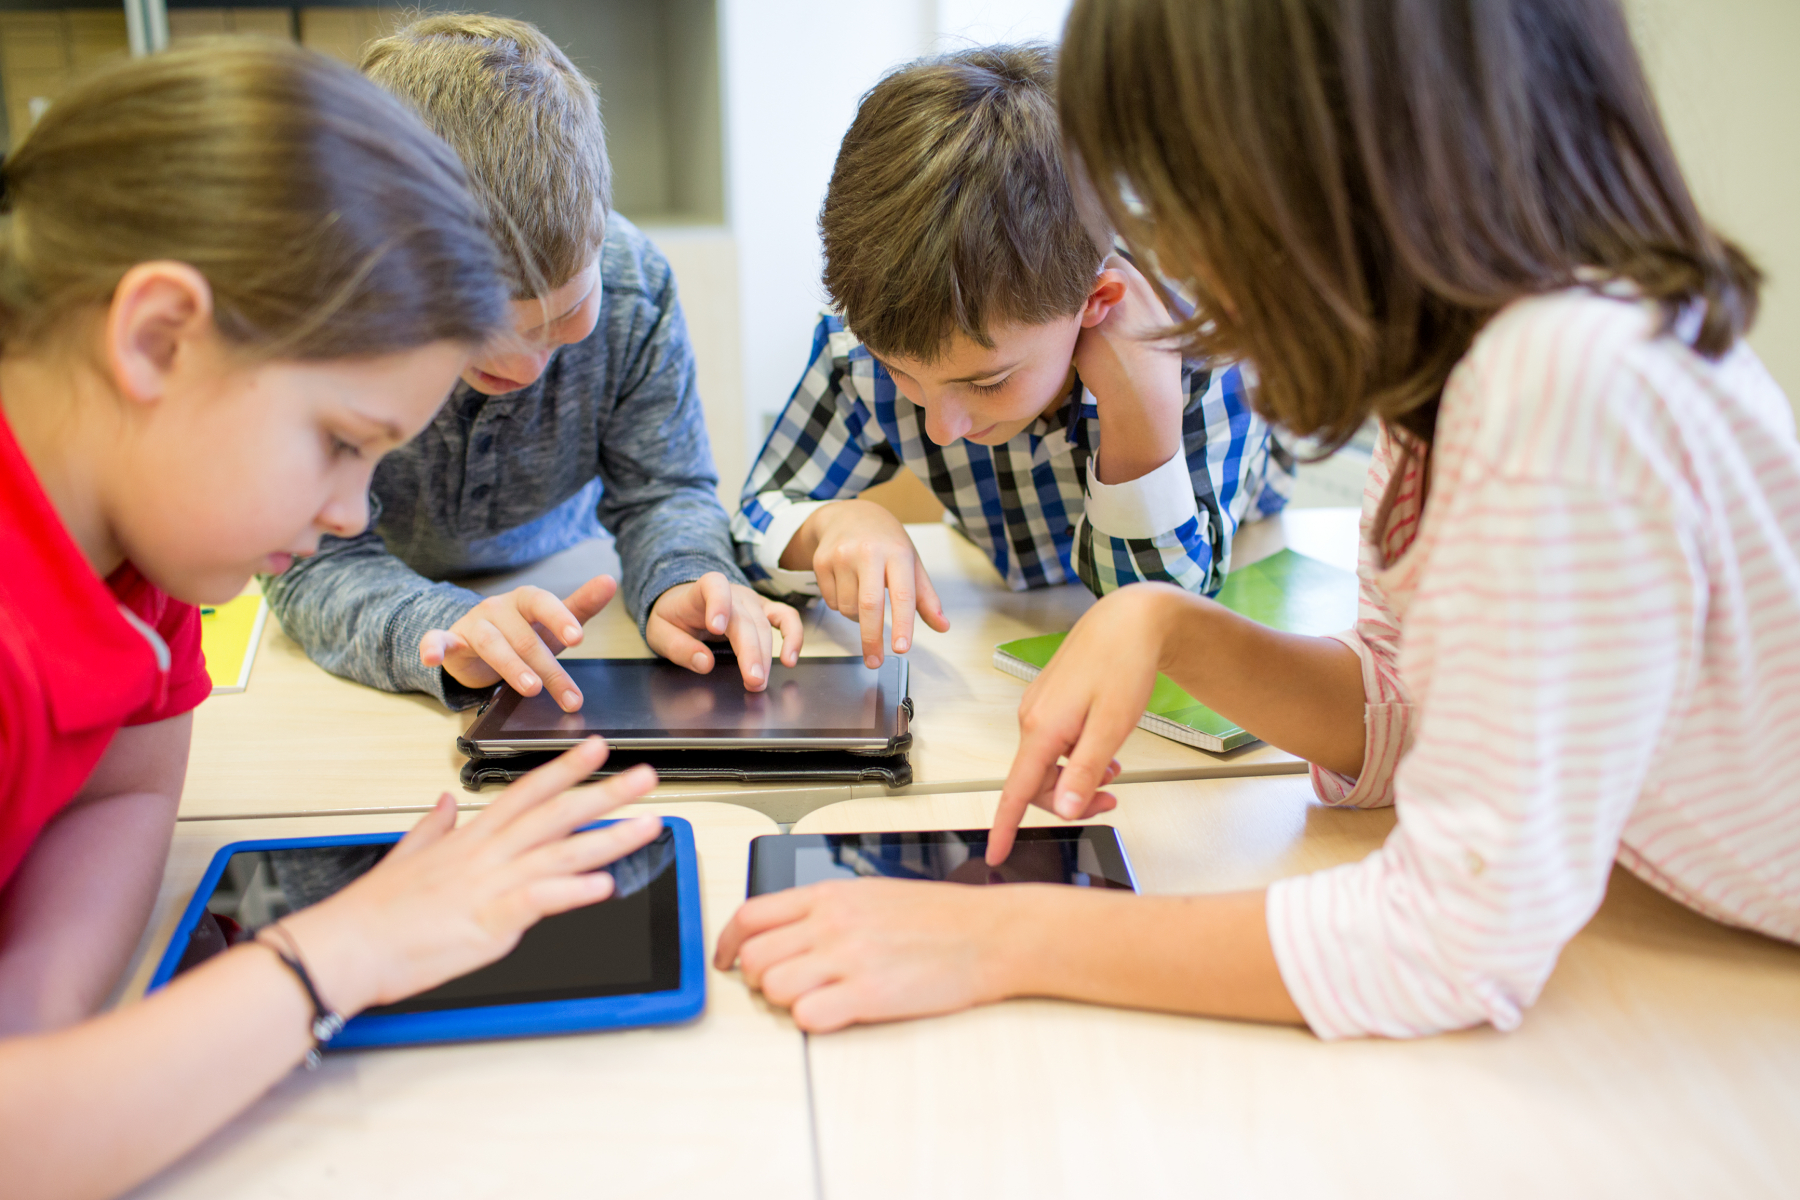 10676286-group-of-school-kids-with-tablet-pc-in-classroom